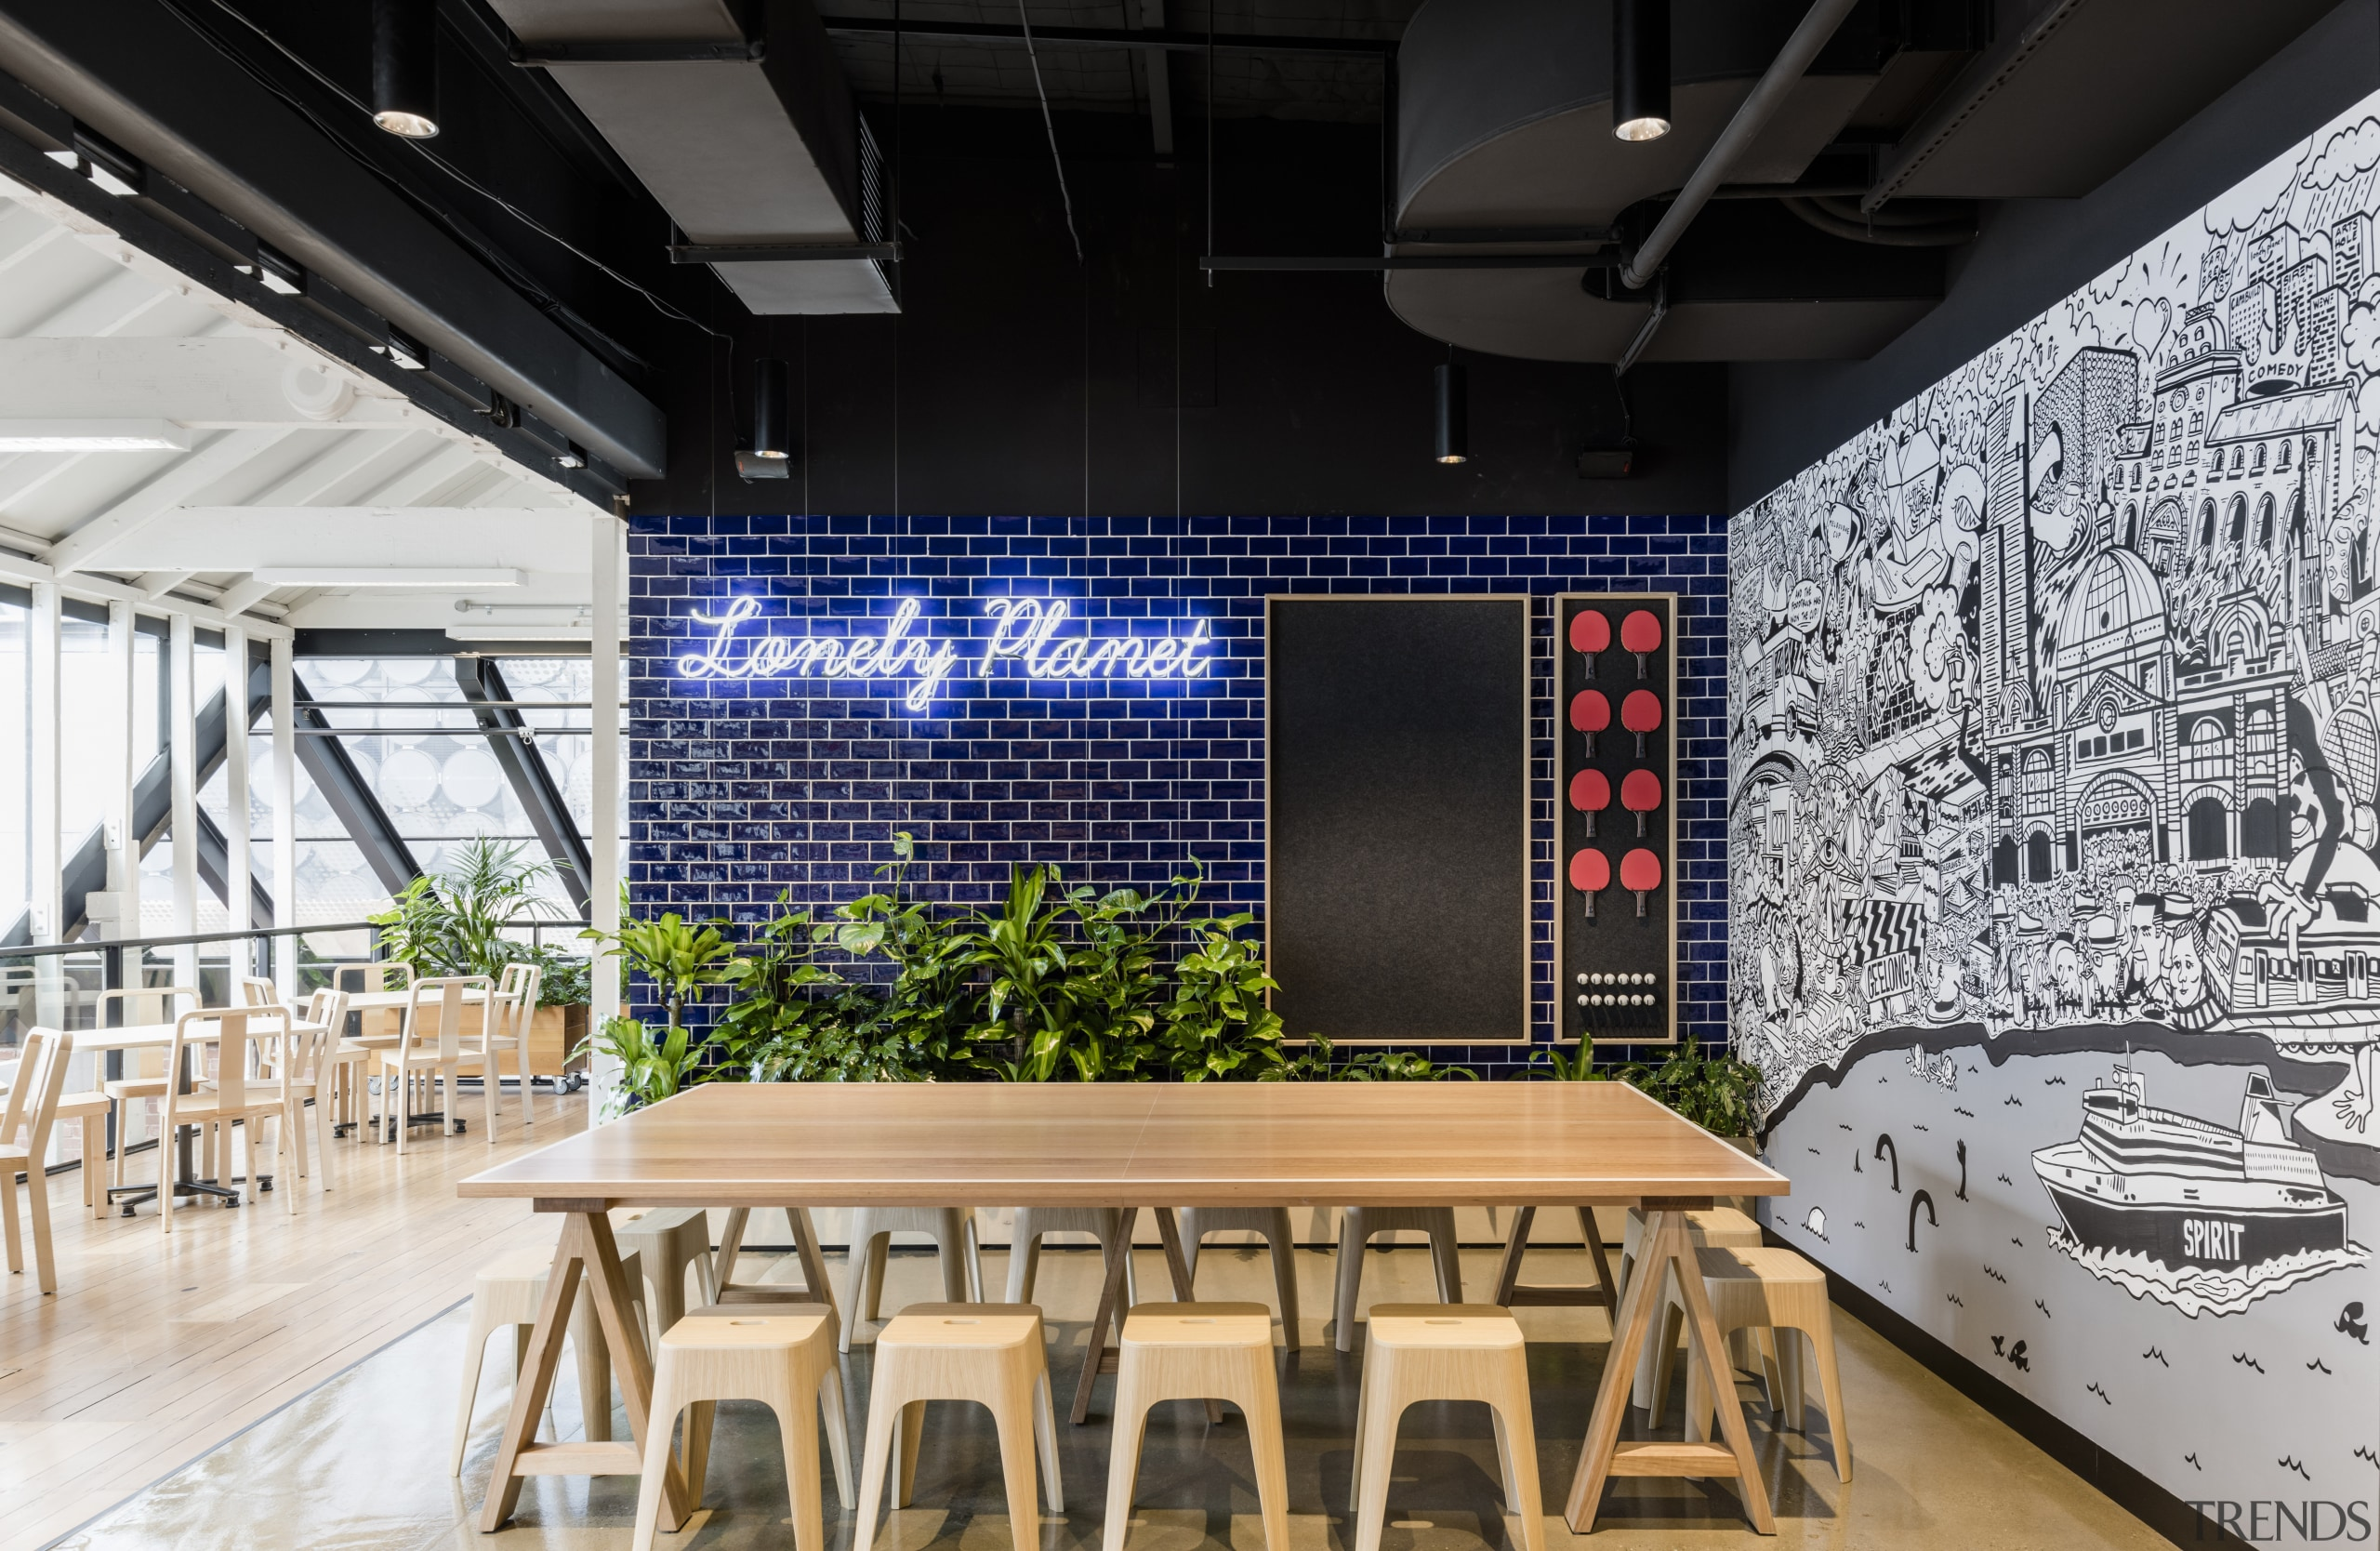 This Lonely Planet staff cafeteria is also a architecture, ceiling, interior design, structure, black, white